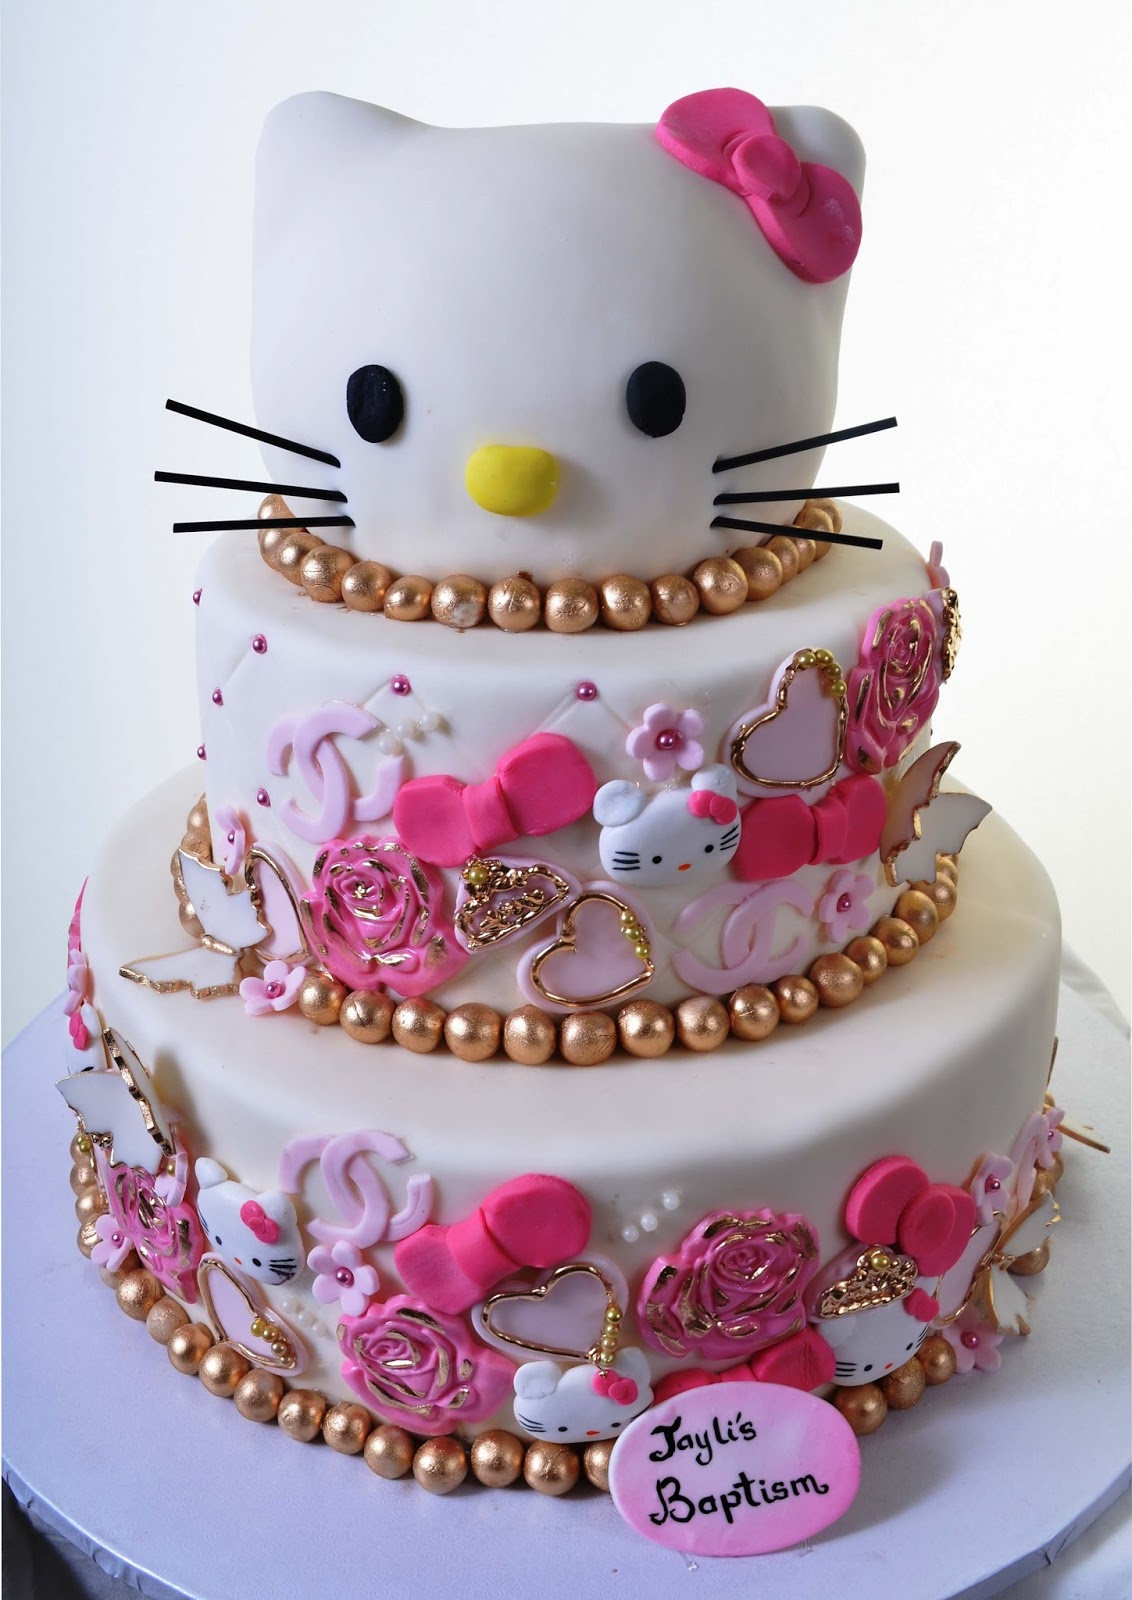 Cake Designs Of Hello Kitty : 10 Hello Kitty Cake Decorations Ideas CAKE DESIGN AND ...